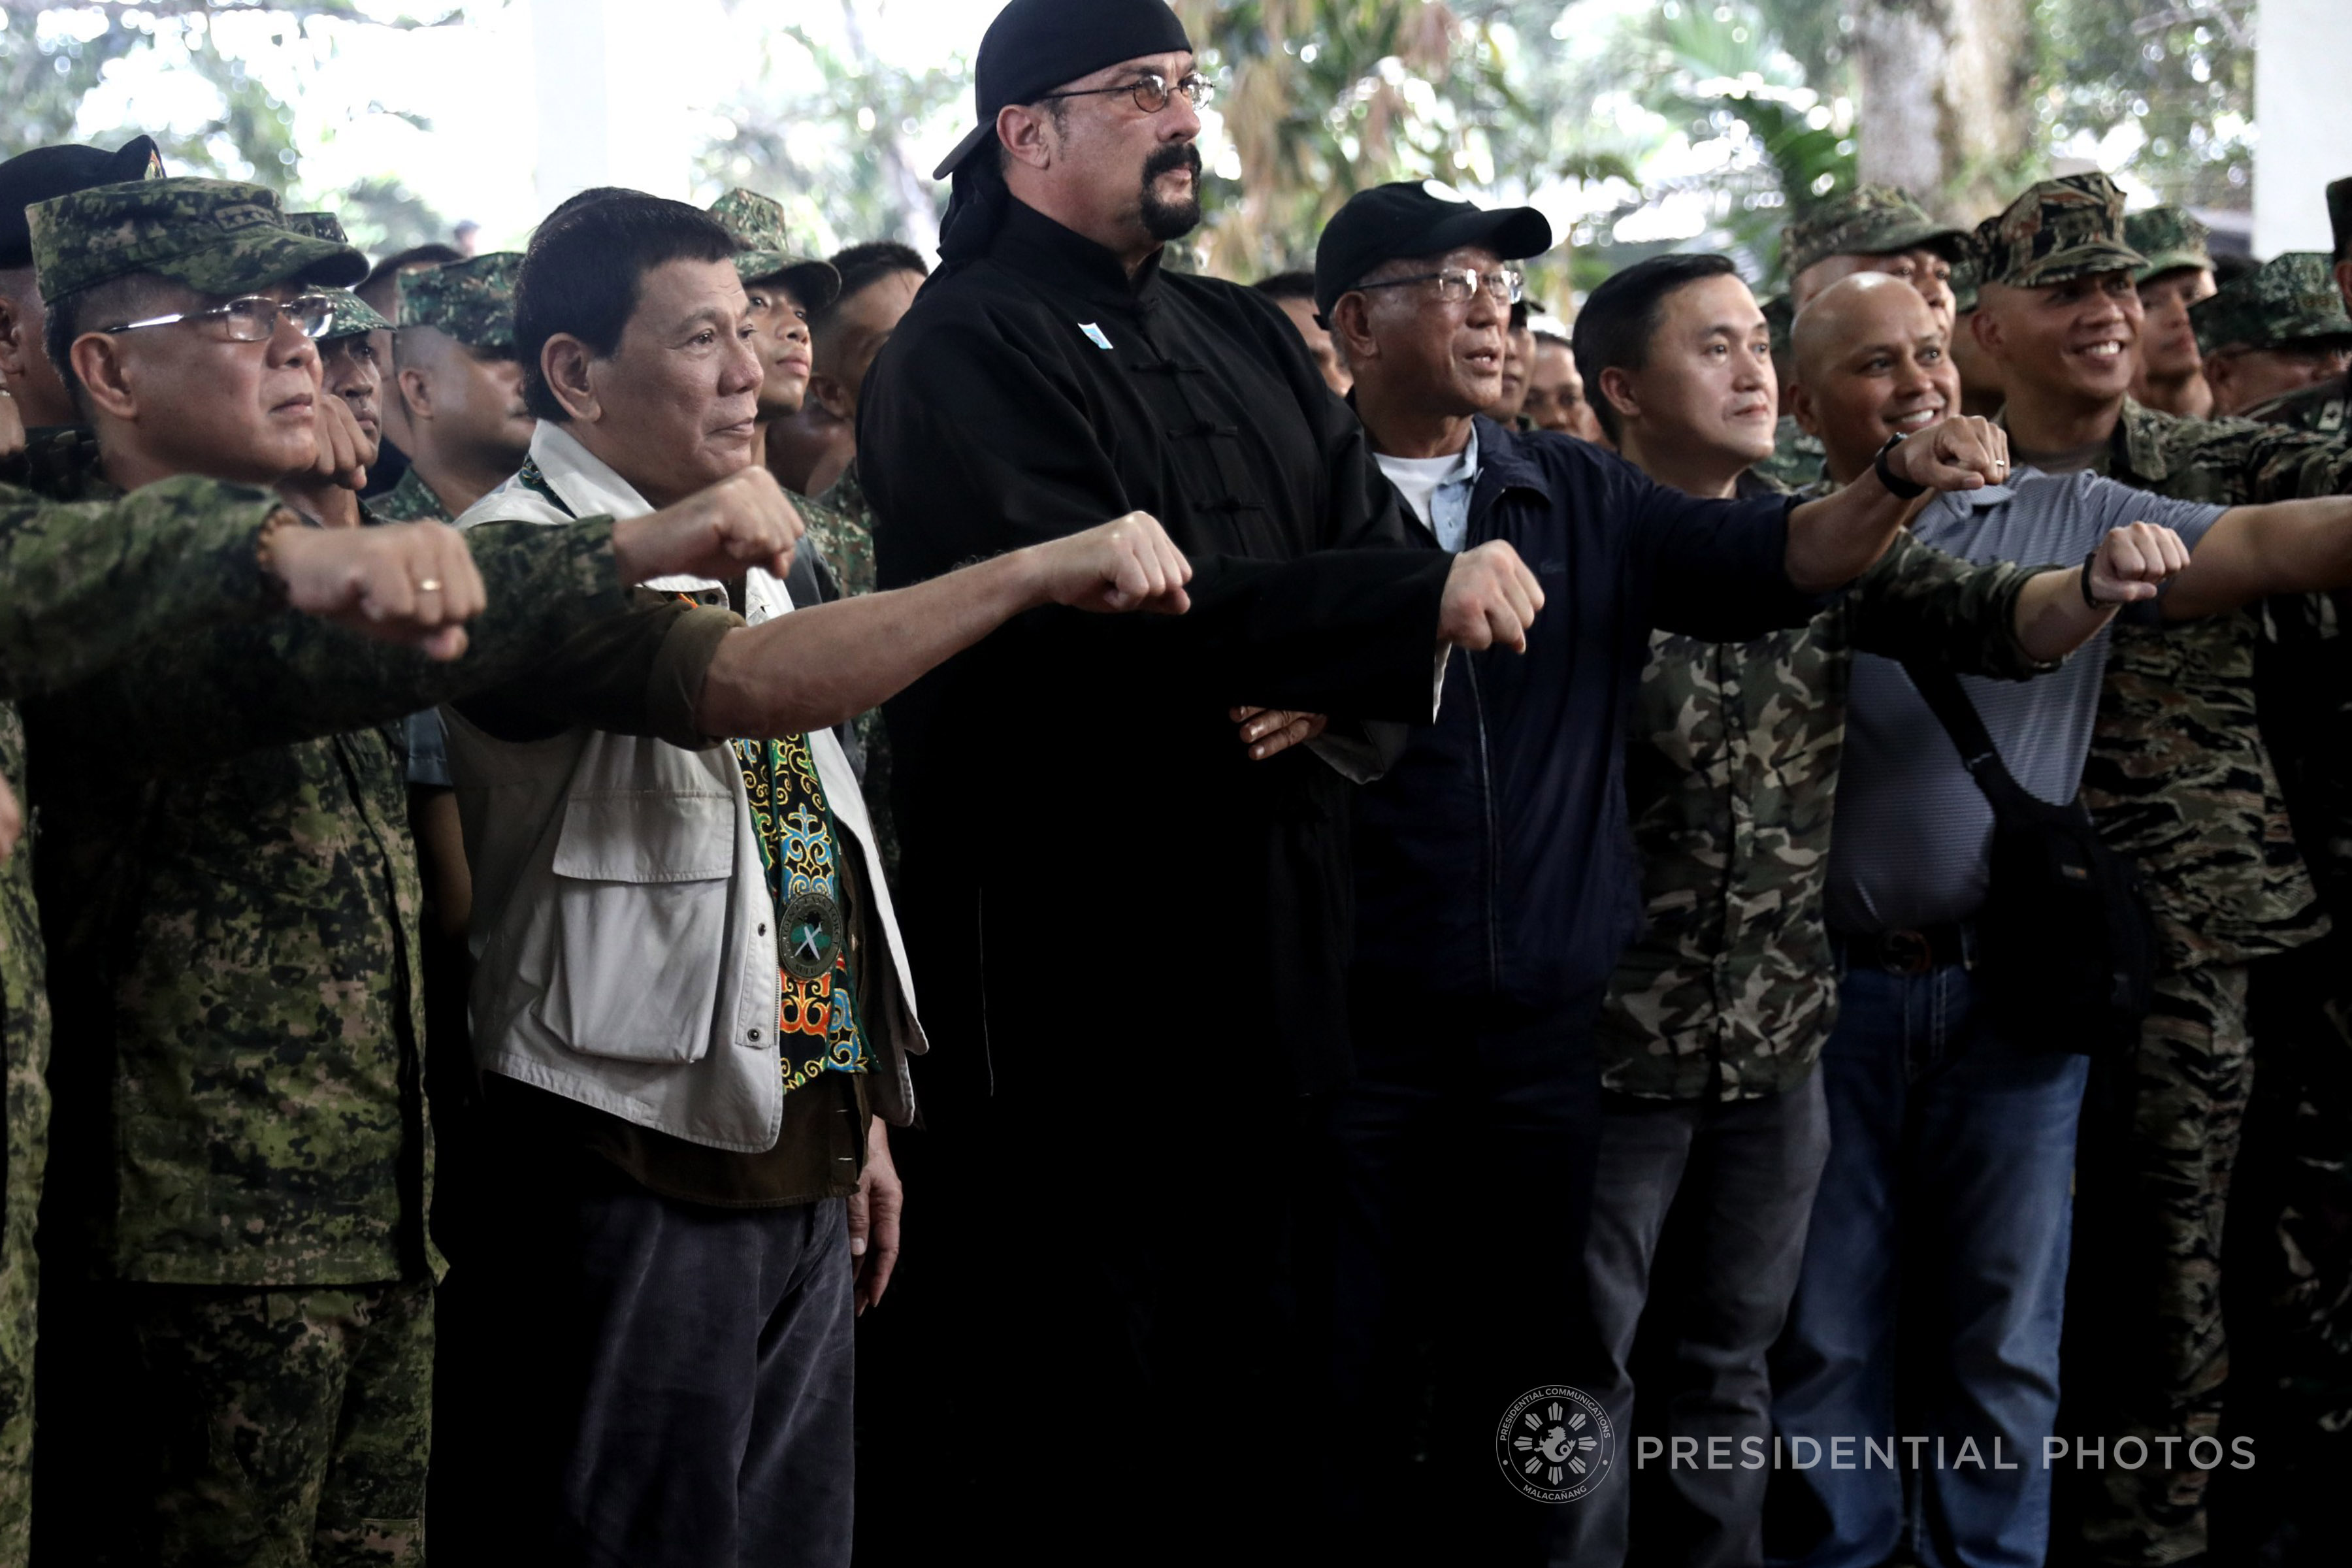 SPECIAL GUEST. President Rodrigo Roa Duterte flashes his signature pose with defense and military officials and his spcial guest,Hollywood actor Steven Seagal in a camp visit in Jolo, Sulu. Presidential Photo